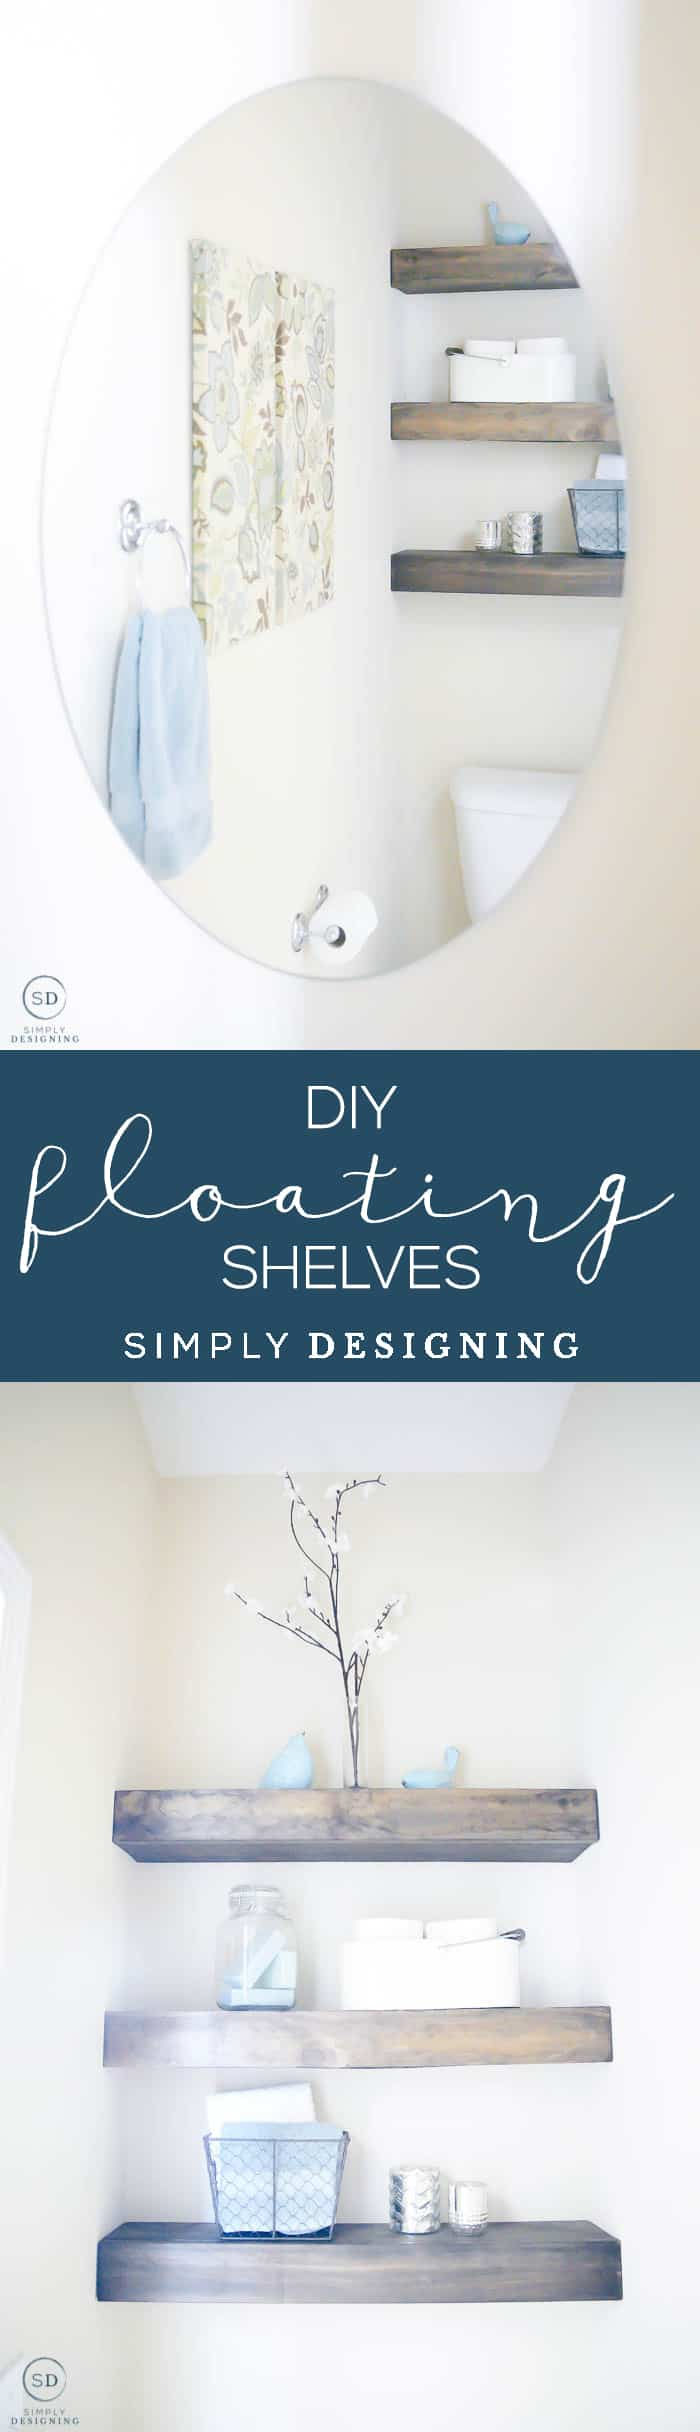 DIY Floating Shelves - sharing all the steps for how to make floating shelves